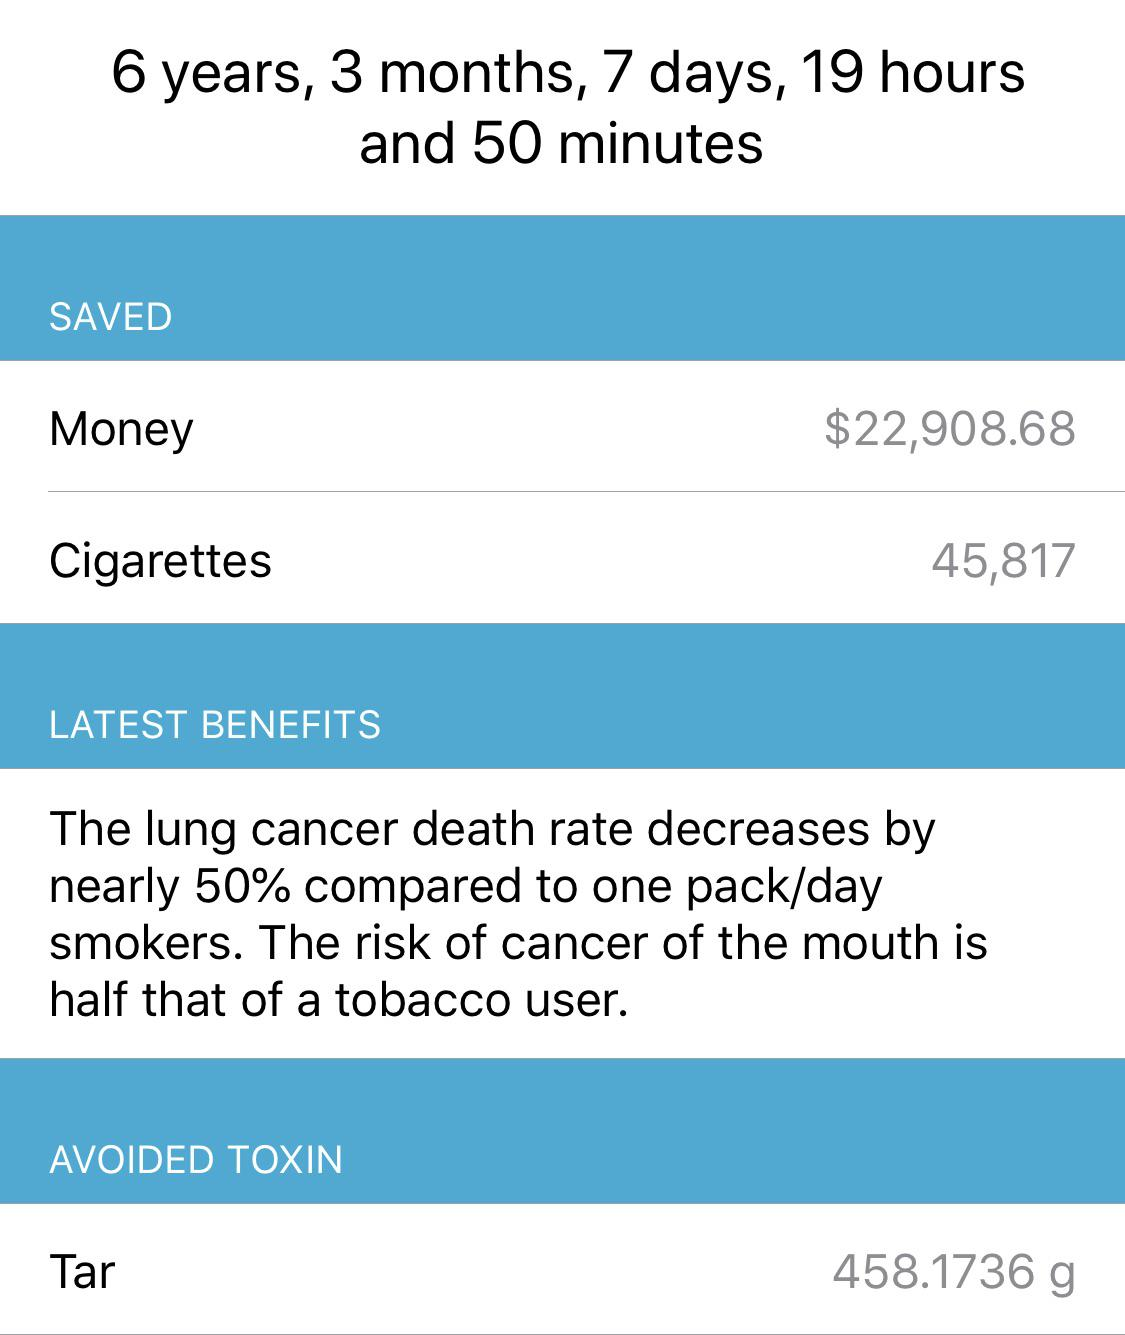 [Image] I quit smoking about 6 years ago. Since then I haven't spent $23,000 and I haven't smoked 46,000 cigarettes. If I could do it, so can you.